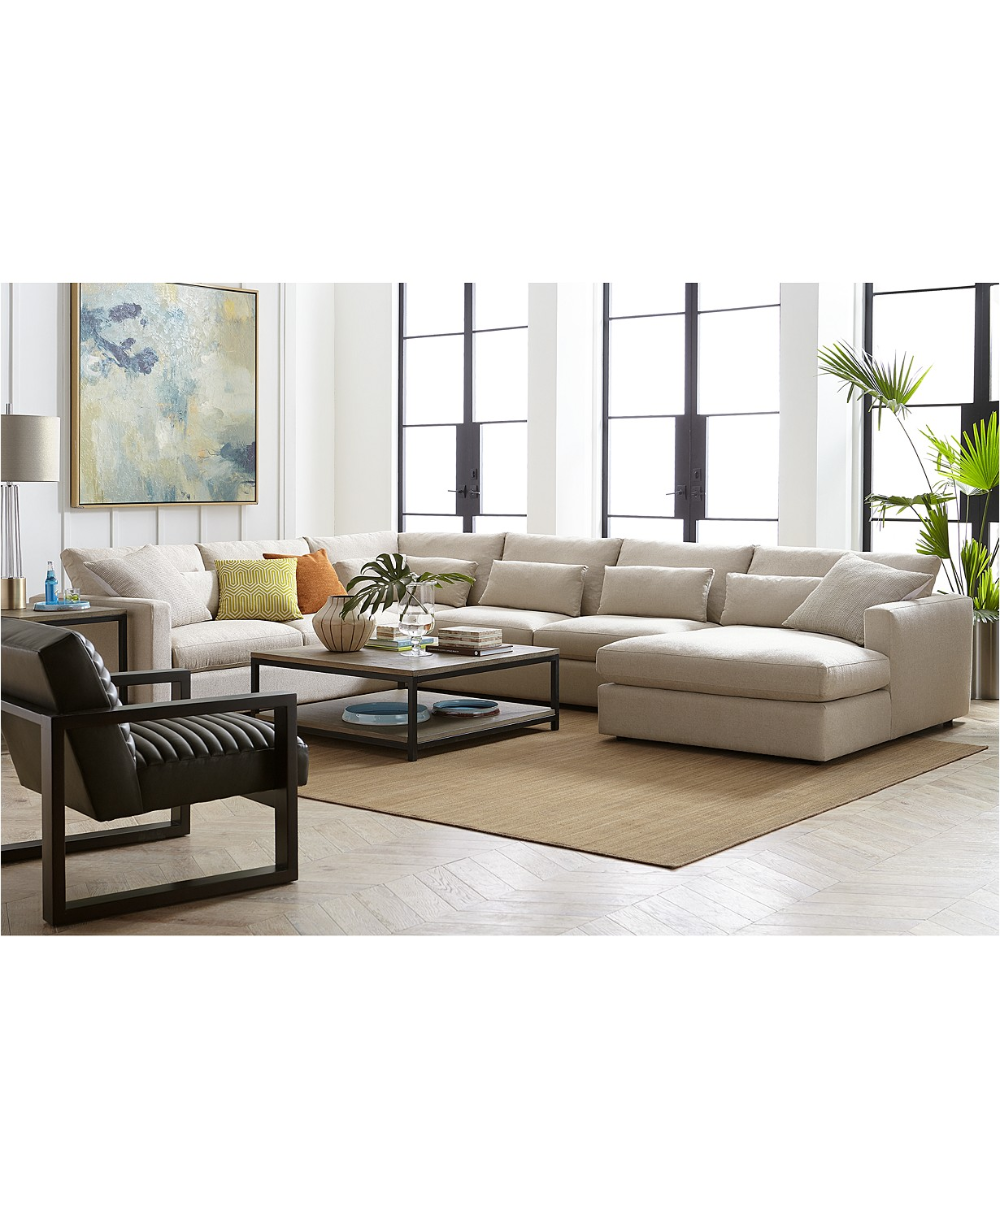 hotel collection canillo fabric sectional sofa collection